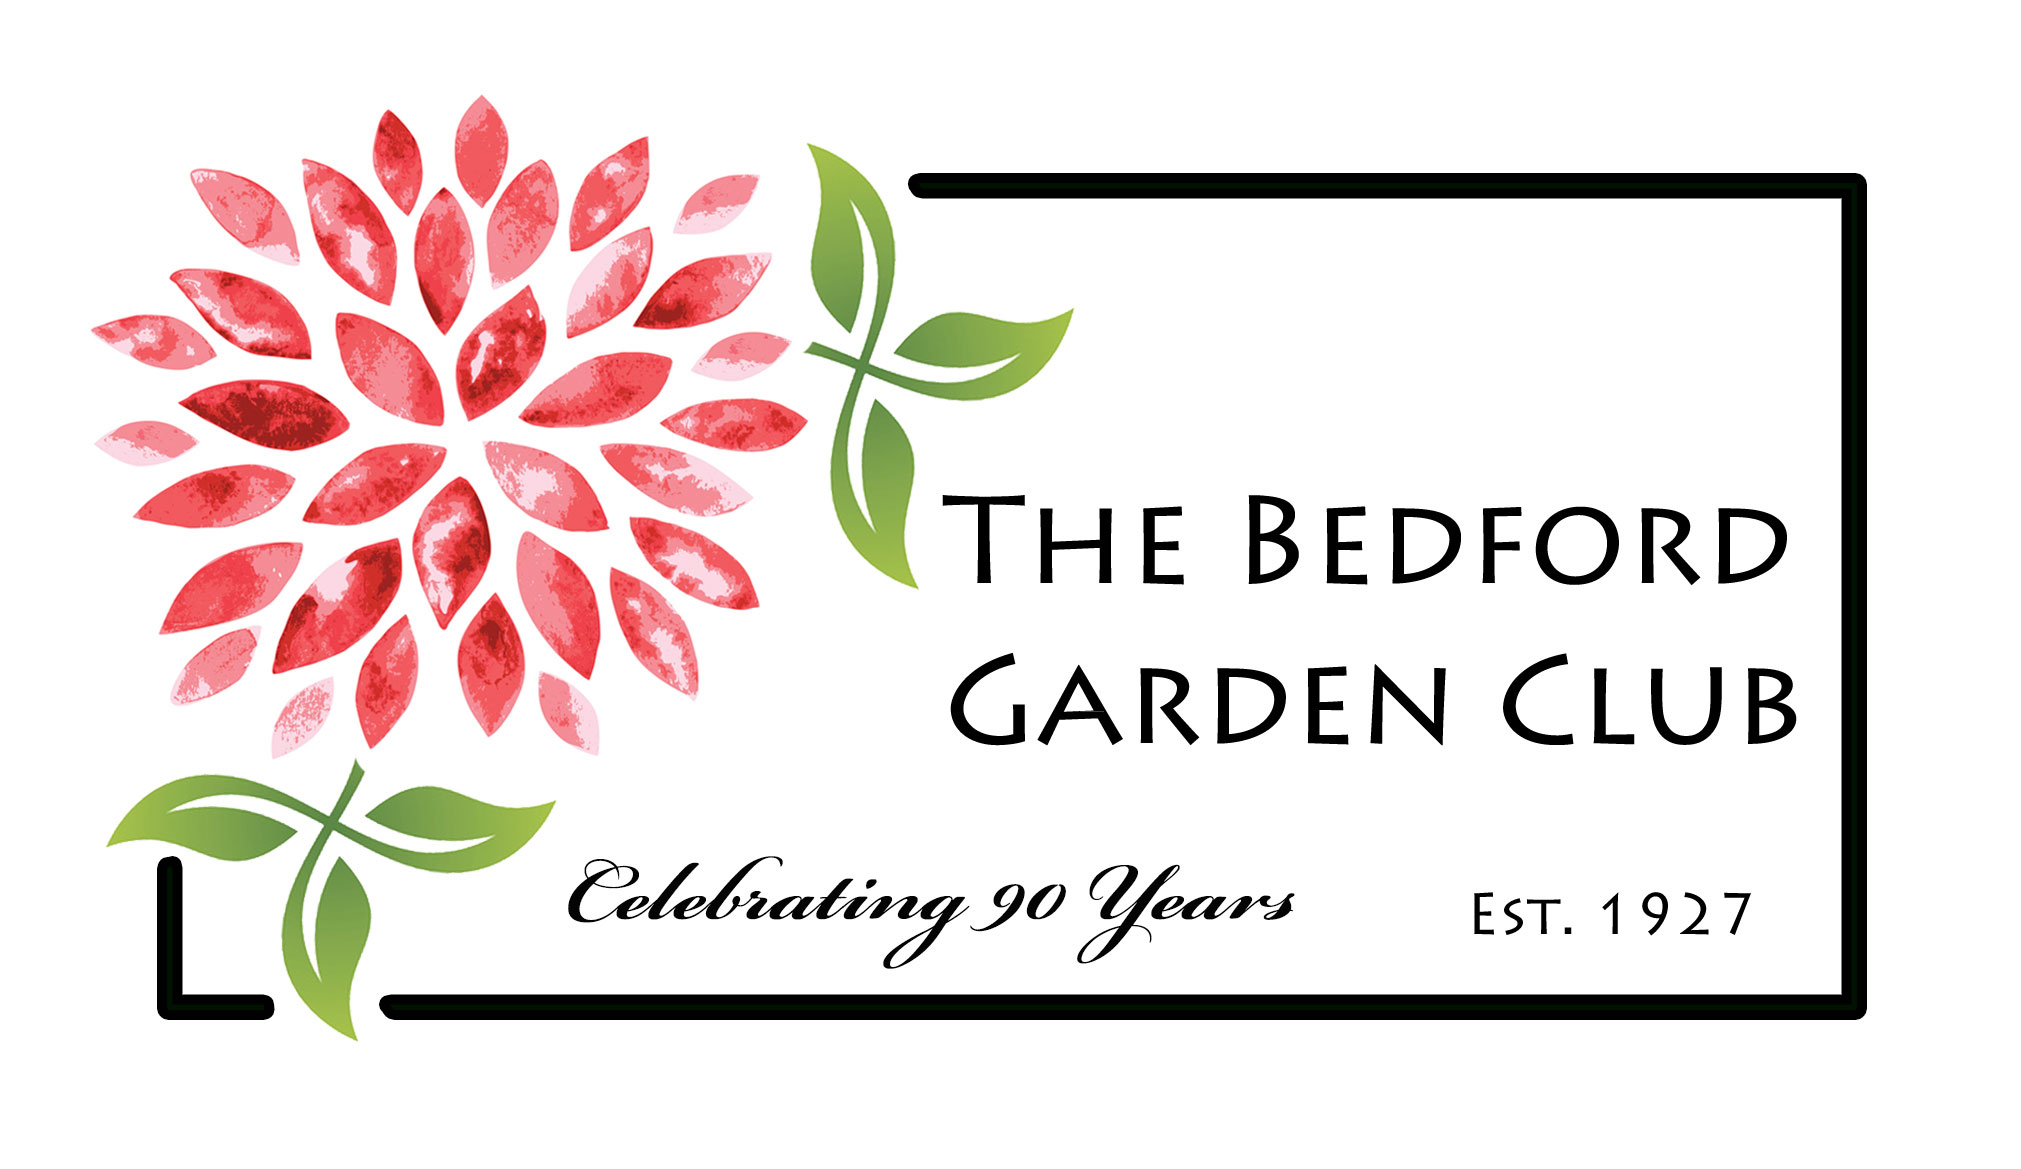 Since 1927, The Bedford Garden Club Continues To Be One Of The Leading  Service Clubs In Bedford. As The Oldest Active Gardening Club In Cuyahoga  County, ...